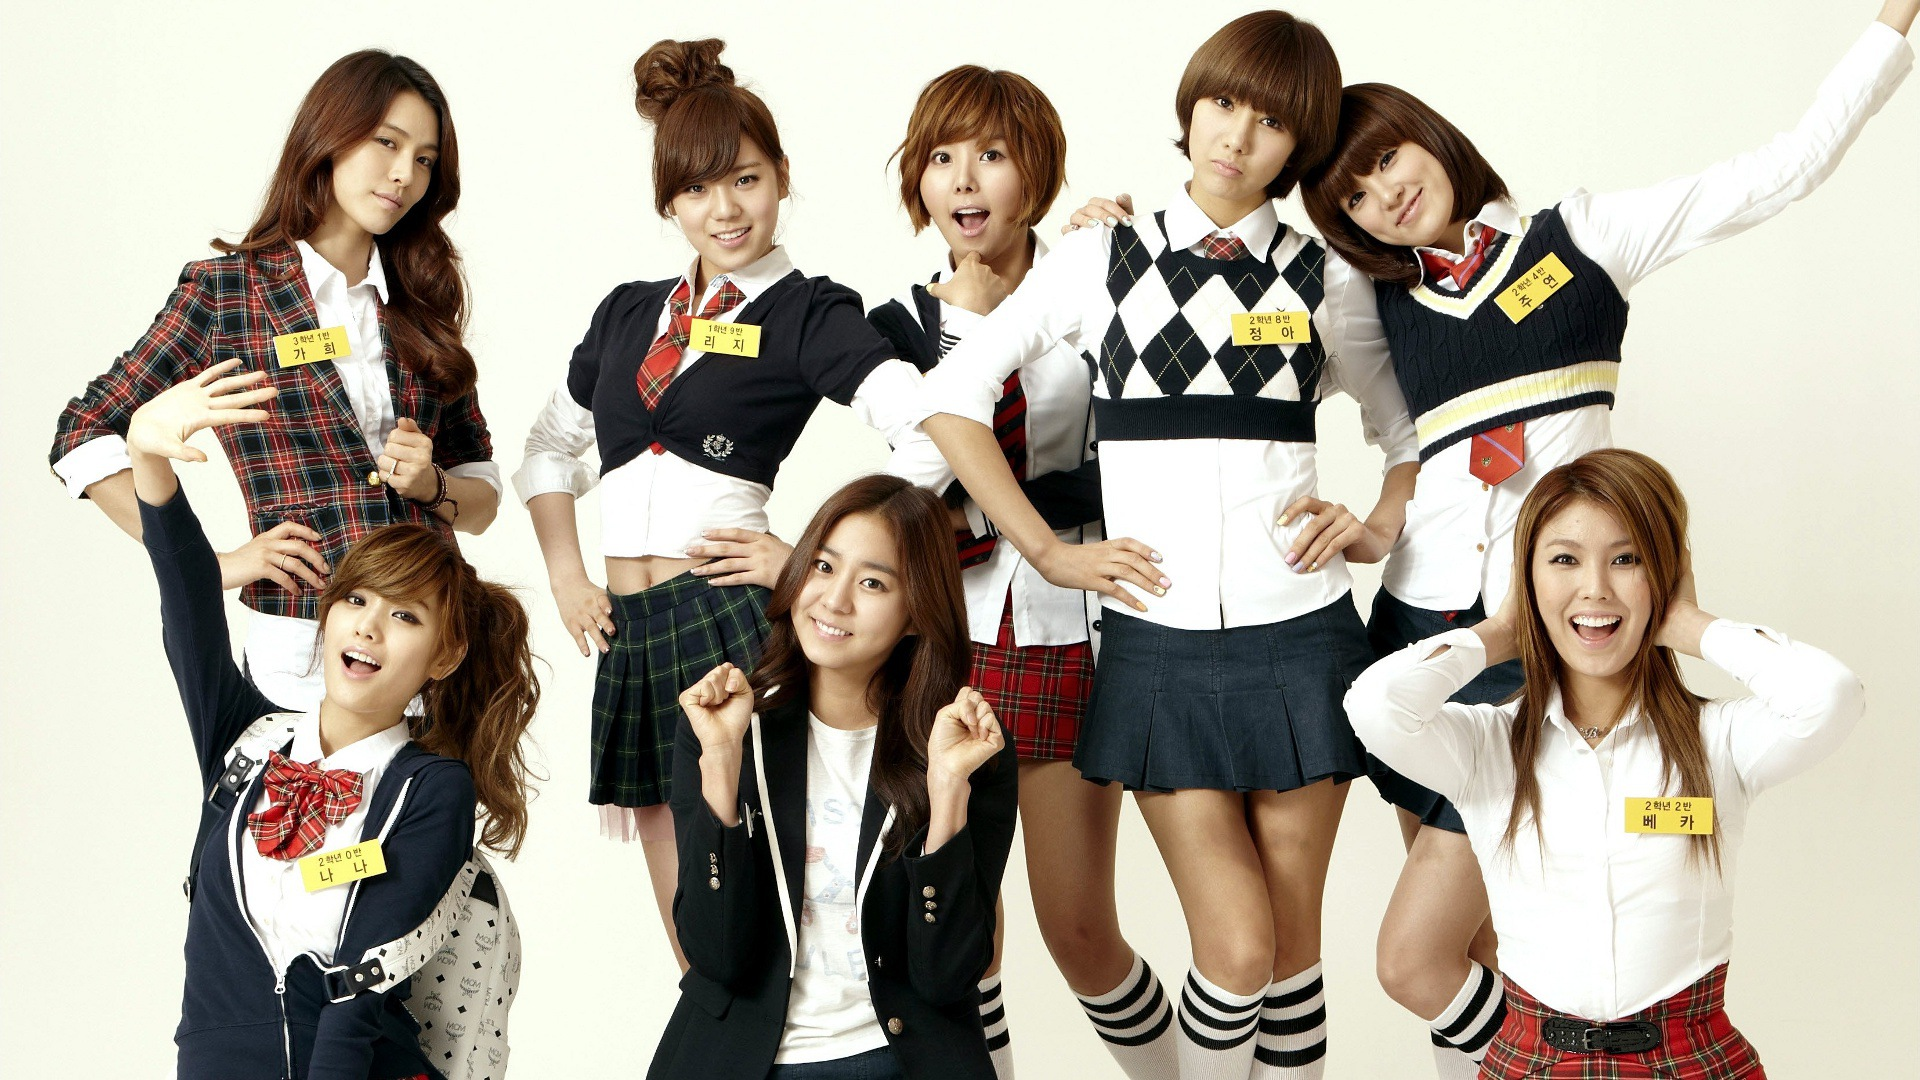 After School HD Wallpaper Background Image 1920x1080 ID 1920x1080